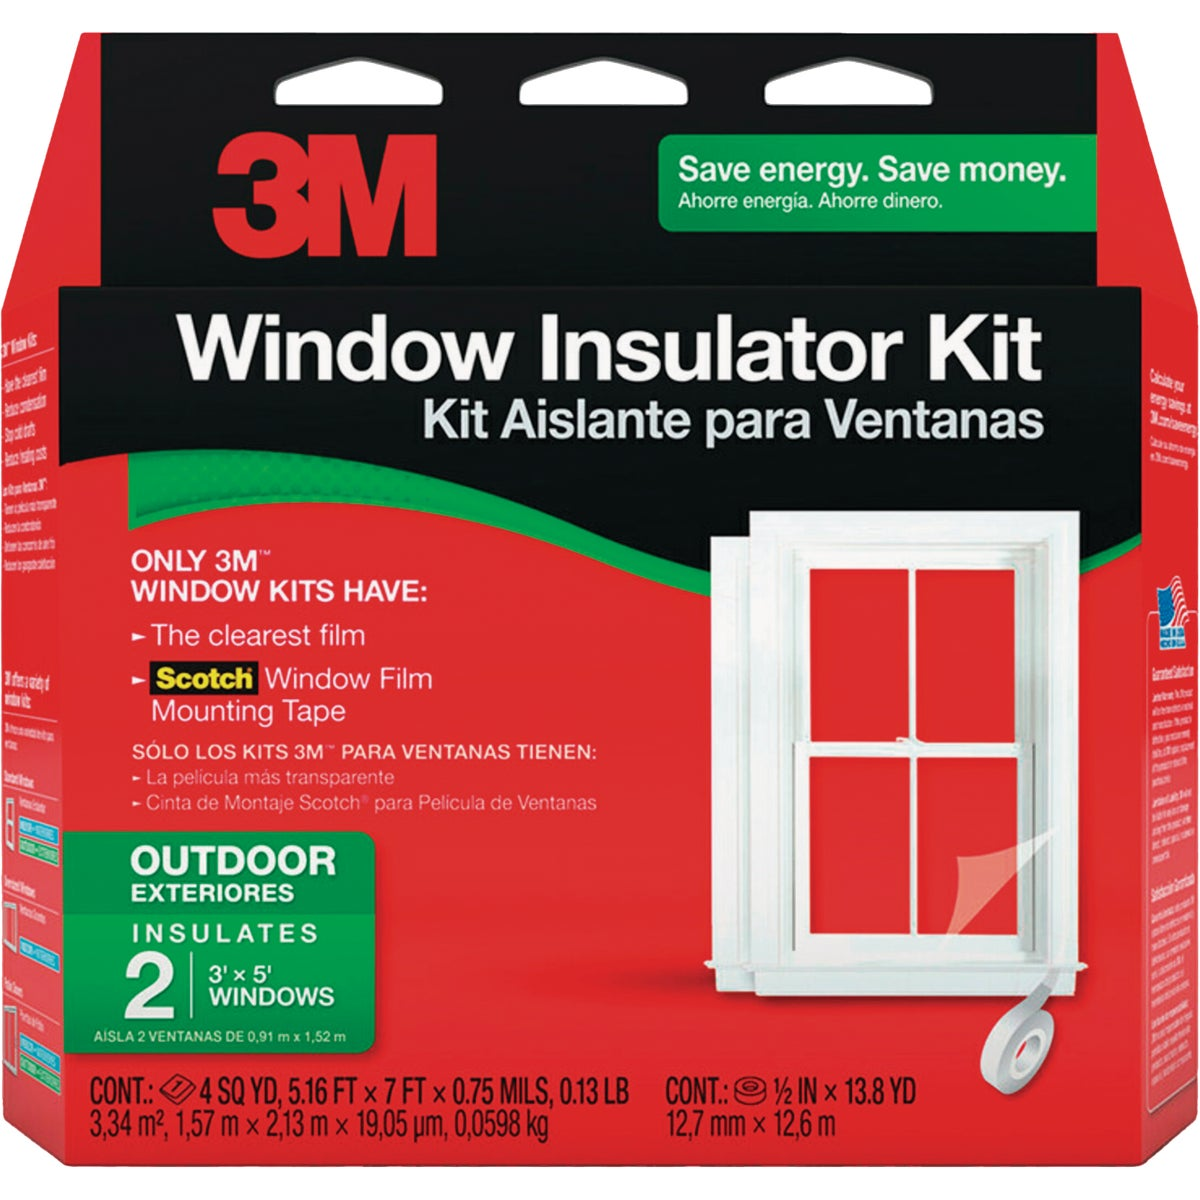 2PK OTDR WDW INSULAT KIT - 2170W-6 by 3m Co